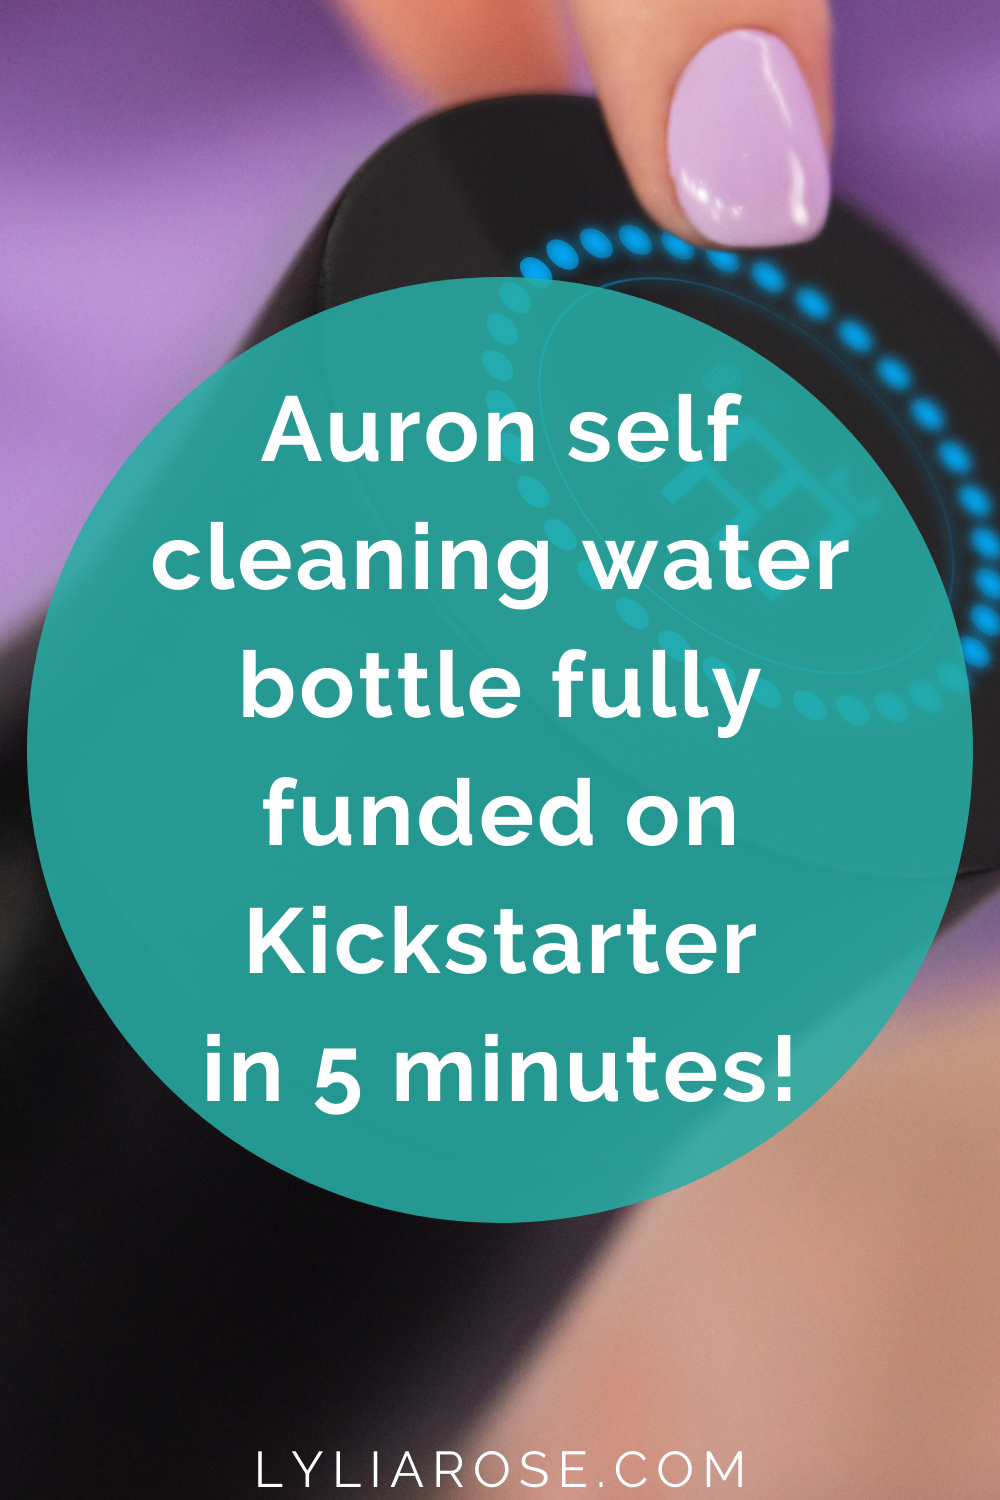 Auron self cleaning water bottle fully funded on Kickstarter in 5 minutes